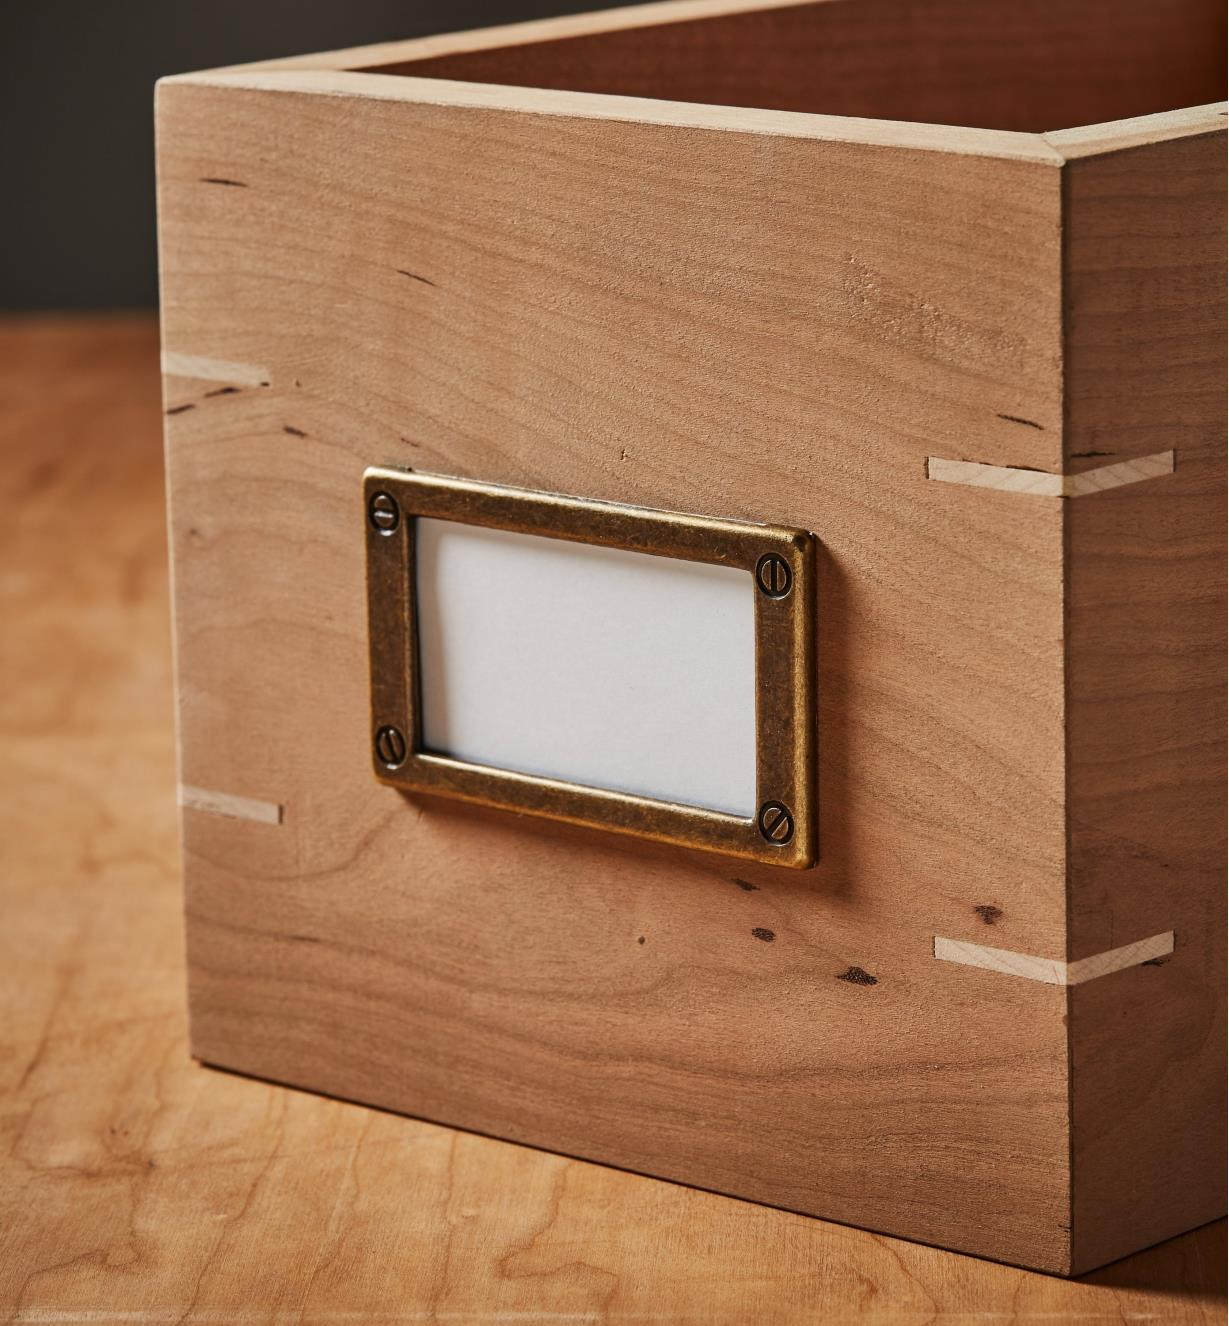 Card frame installed on a box